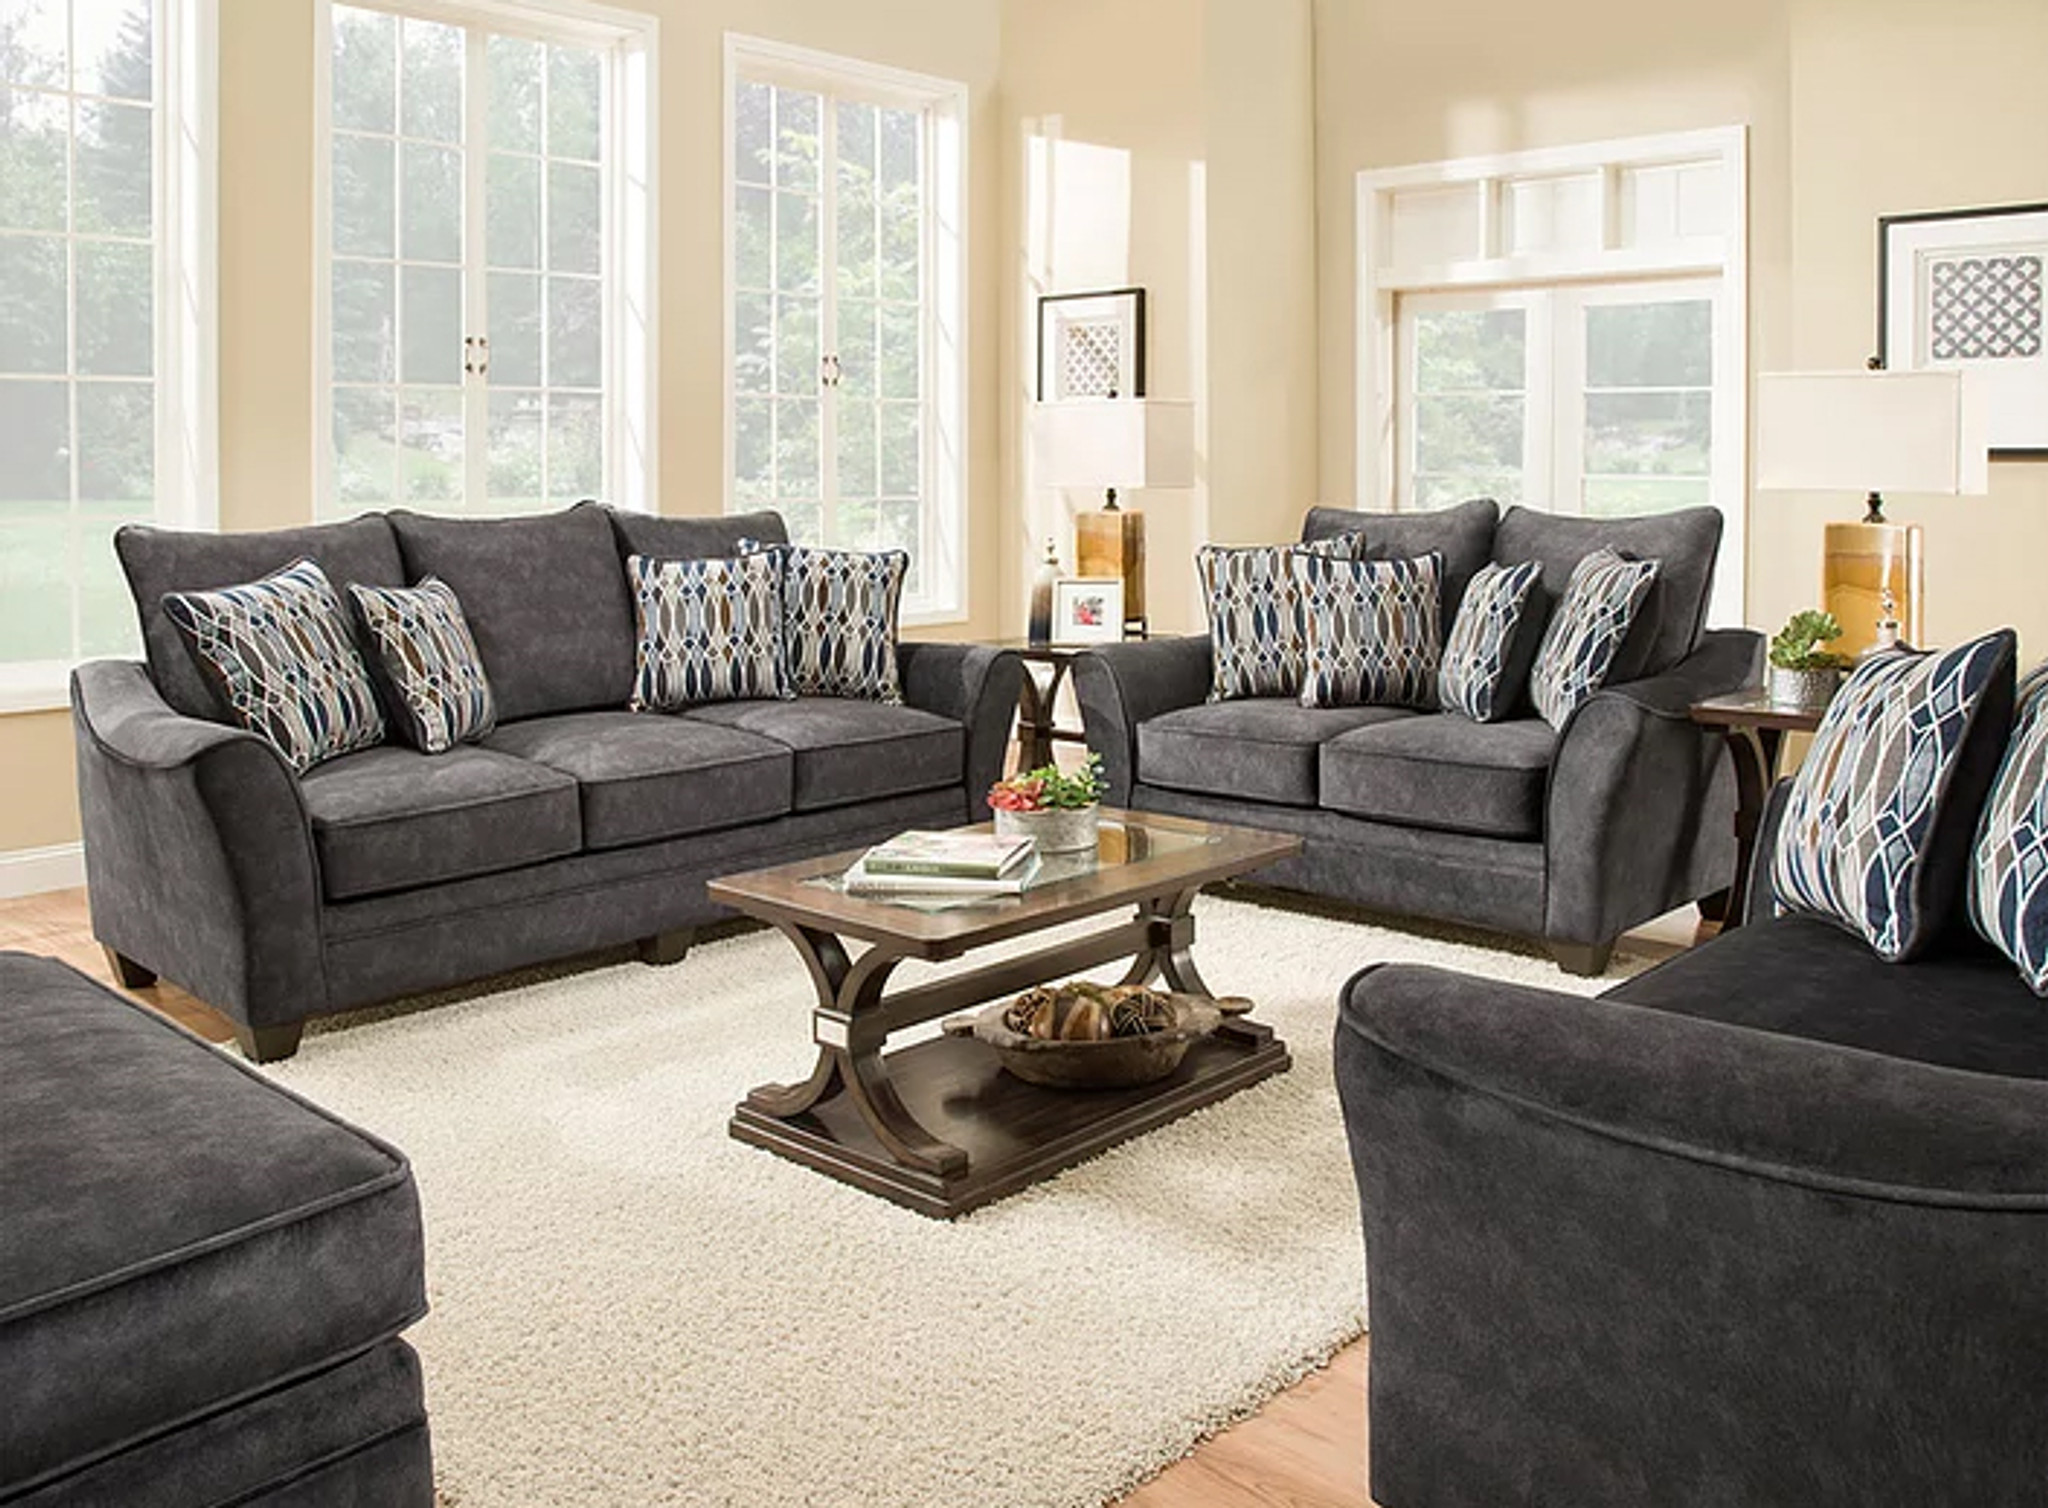 2 PCS ATHENA GRAY SOFA & LOVESEAT SET